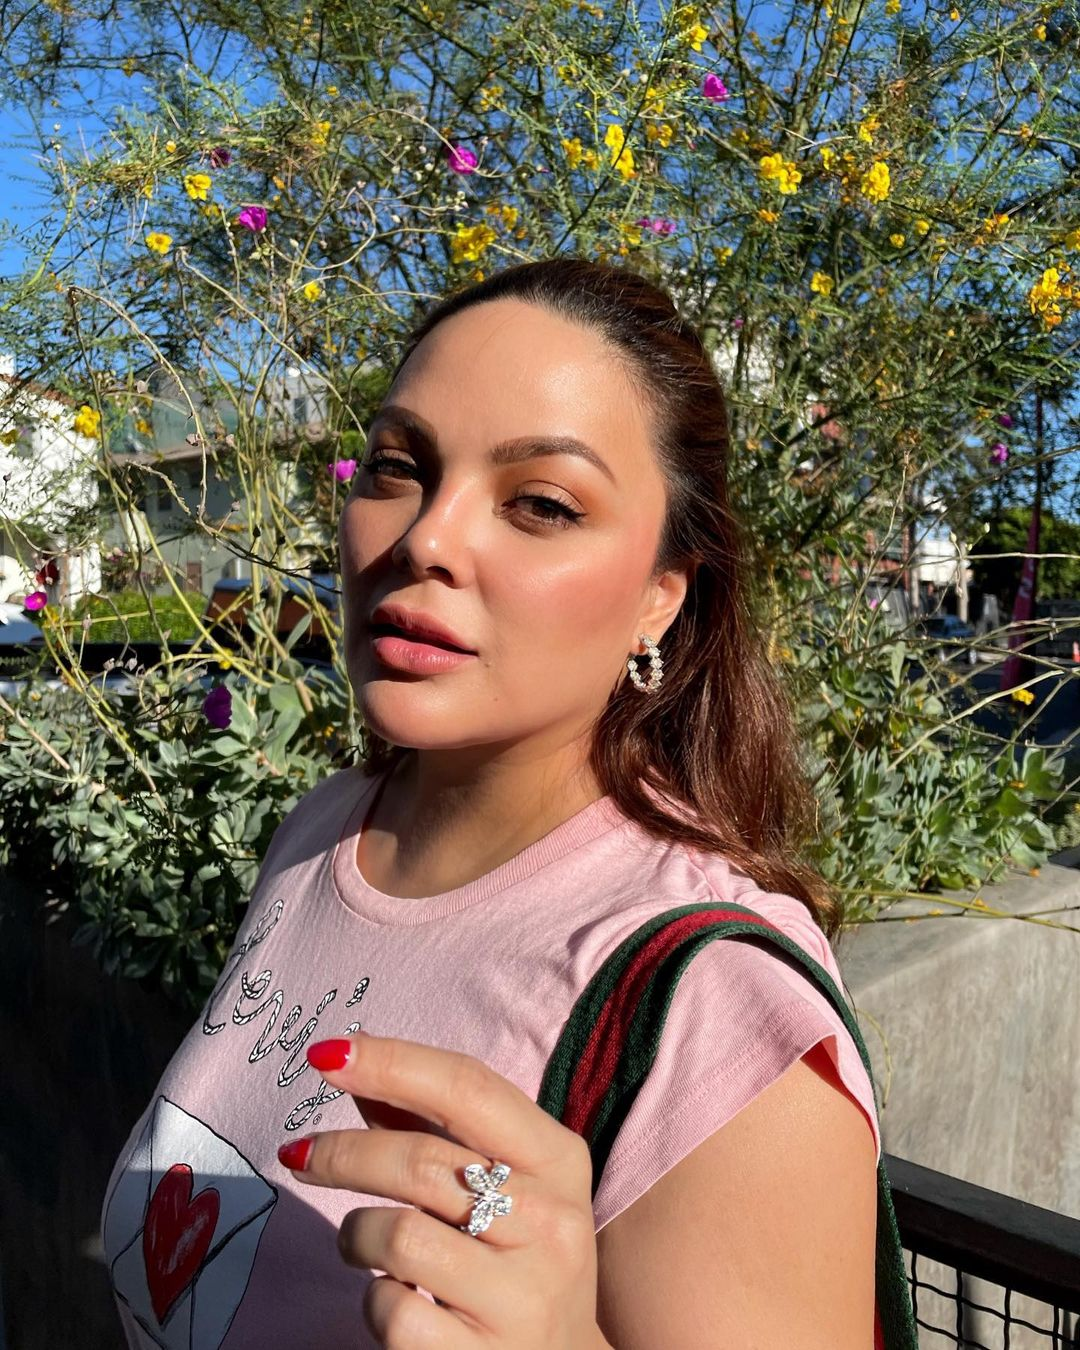 kc concepcion's outfits in los angeles